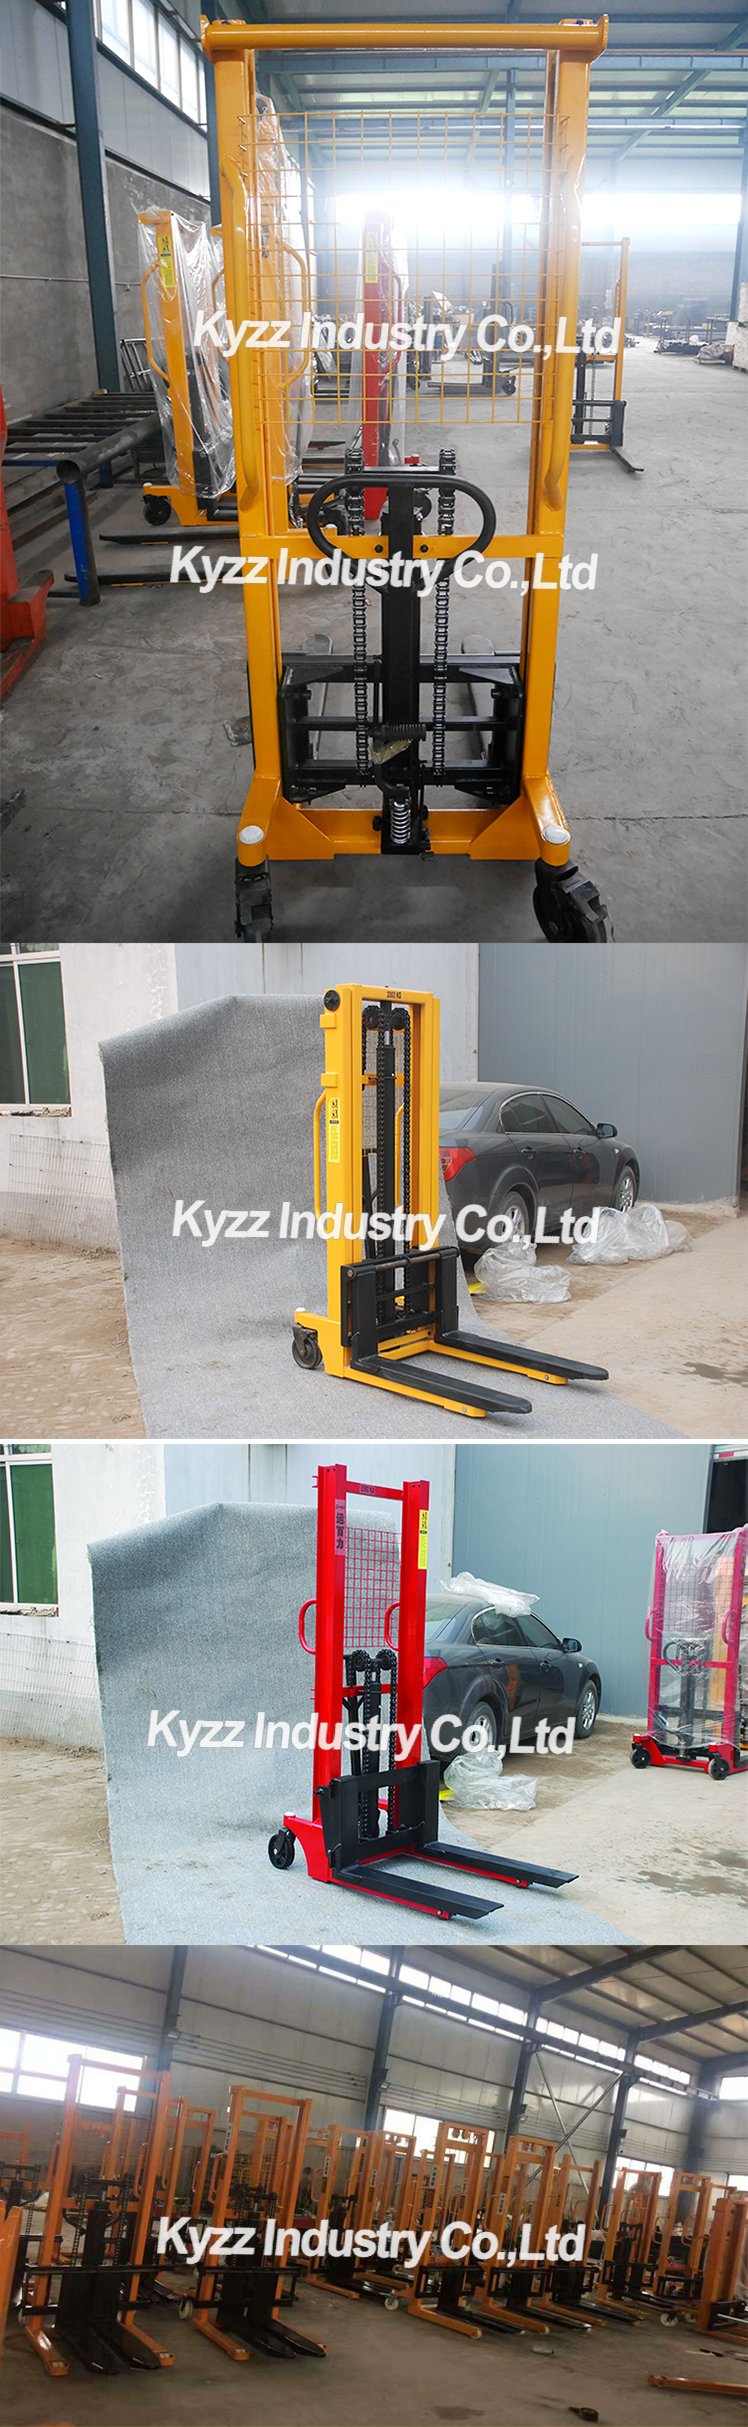 Winch Walking Lifter Industrial Material Stacker Counter Balanced Walker Stacker Hand Pallet Truck Manual